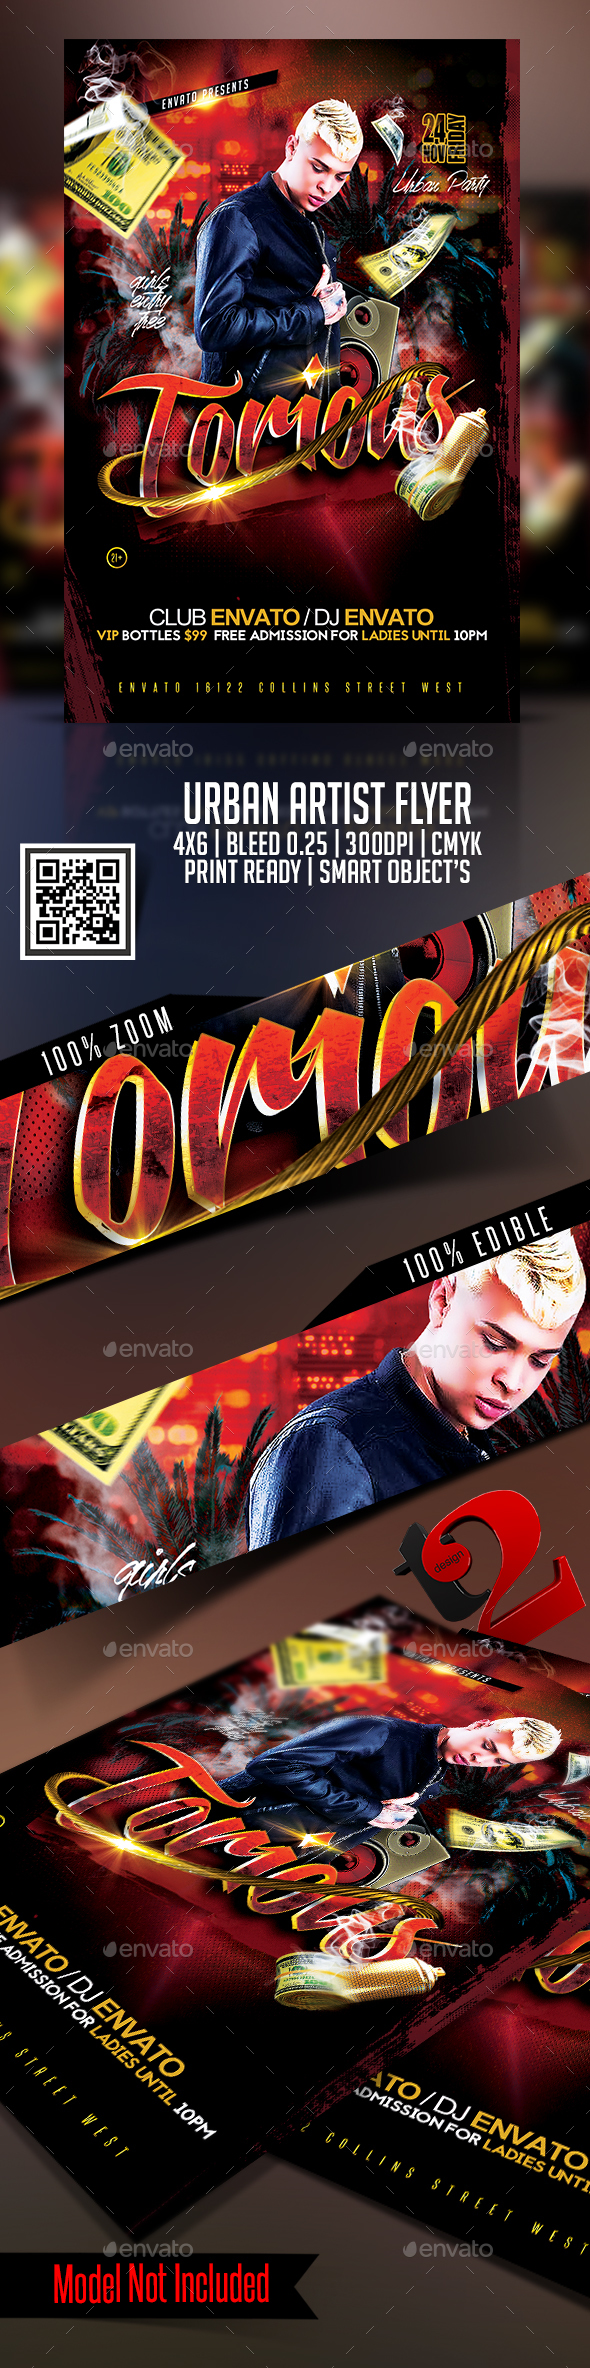 Urban Artist Flyer Template